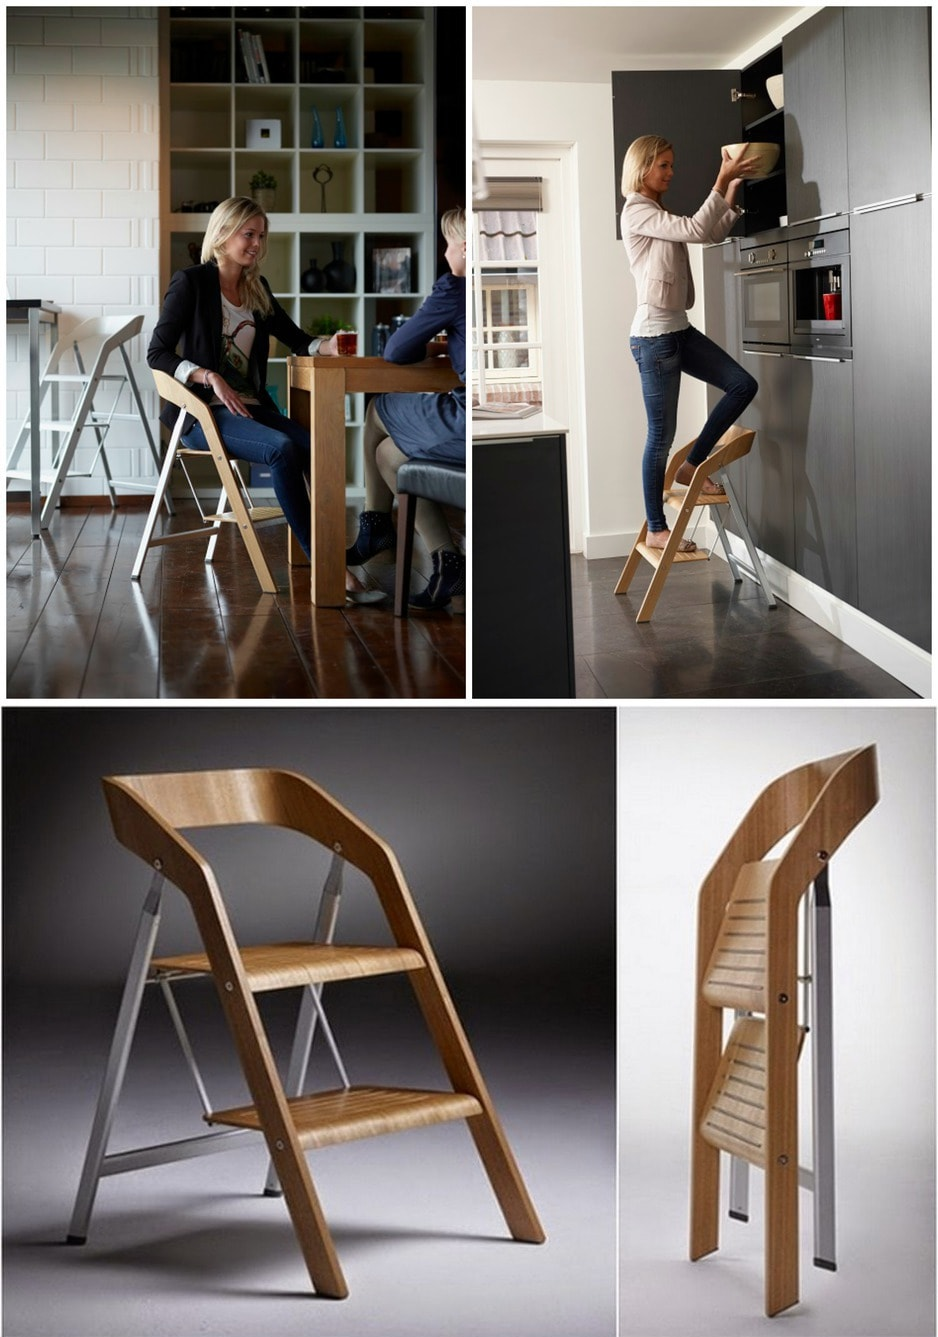 Make Your Cooking Process Easier with Step Up Kitchen Helper. Great designed kitchen foldablr chair-ladder of the light wood and metal frame